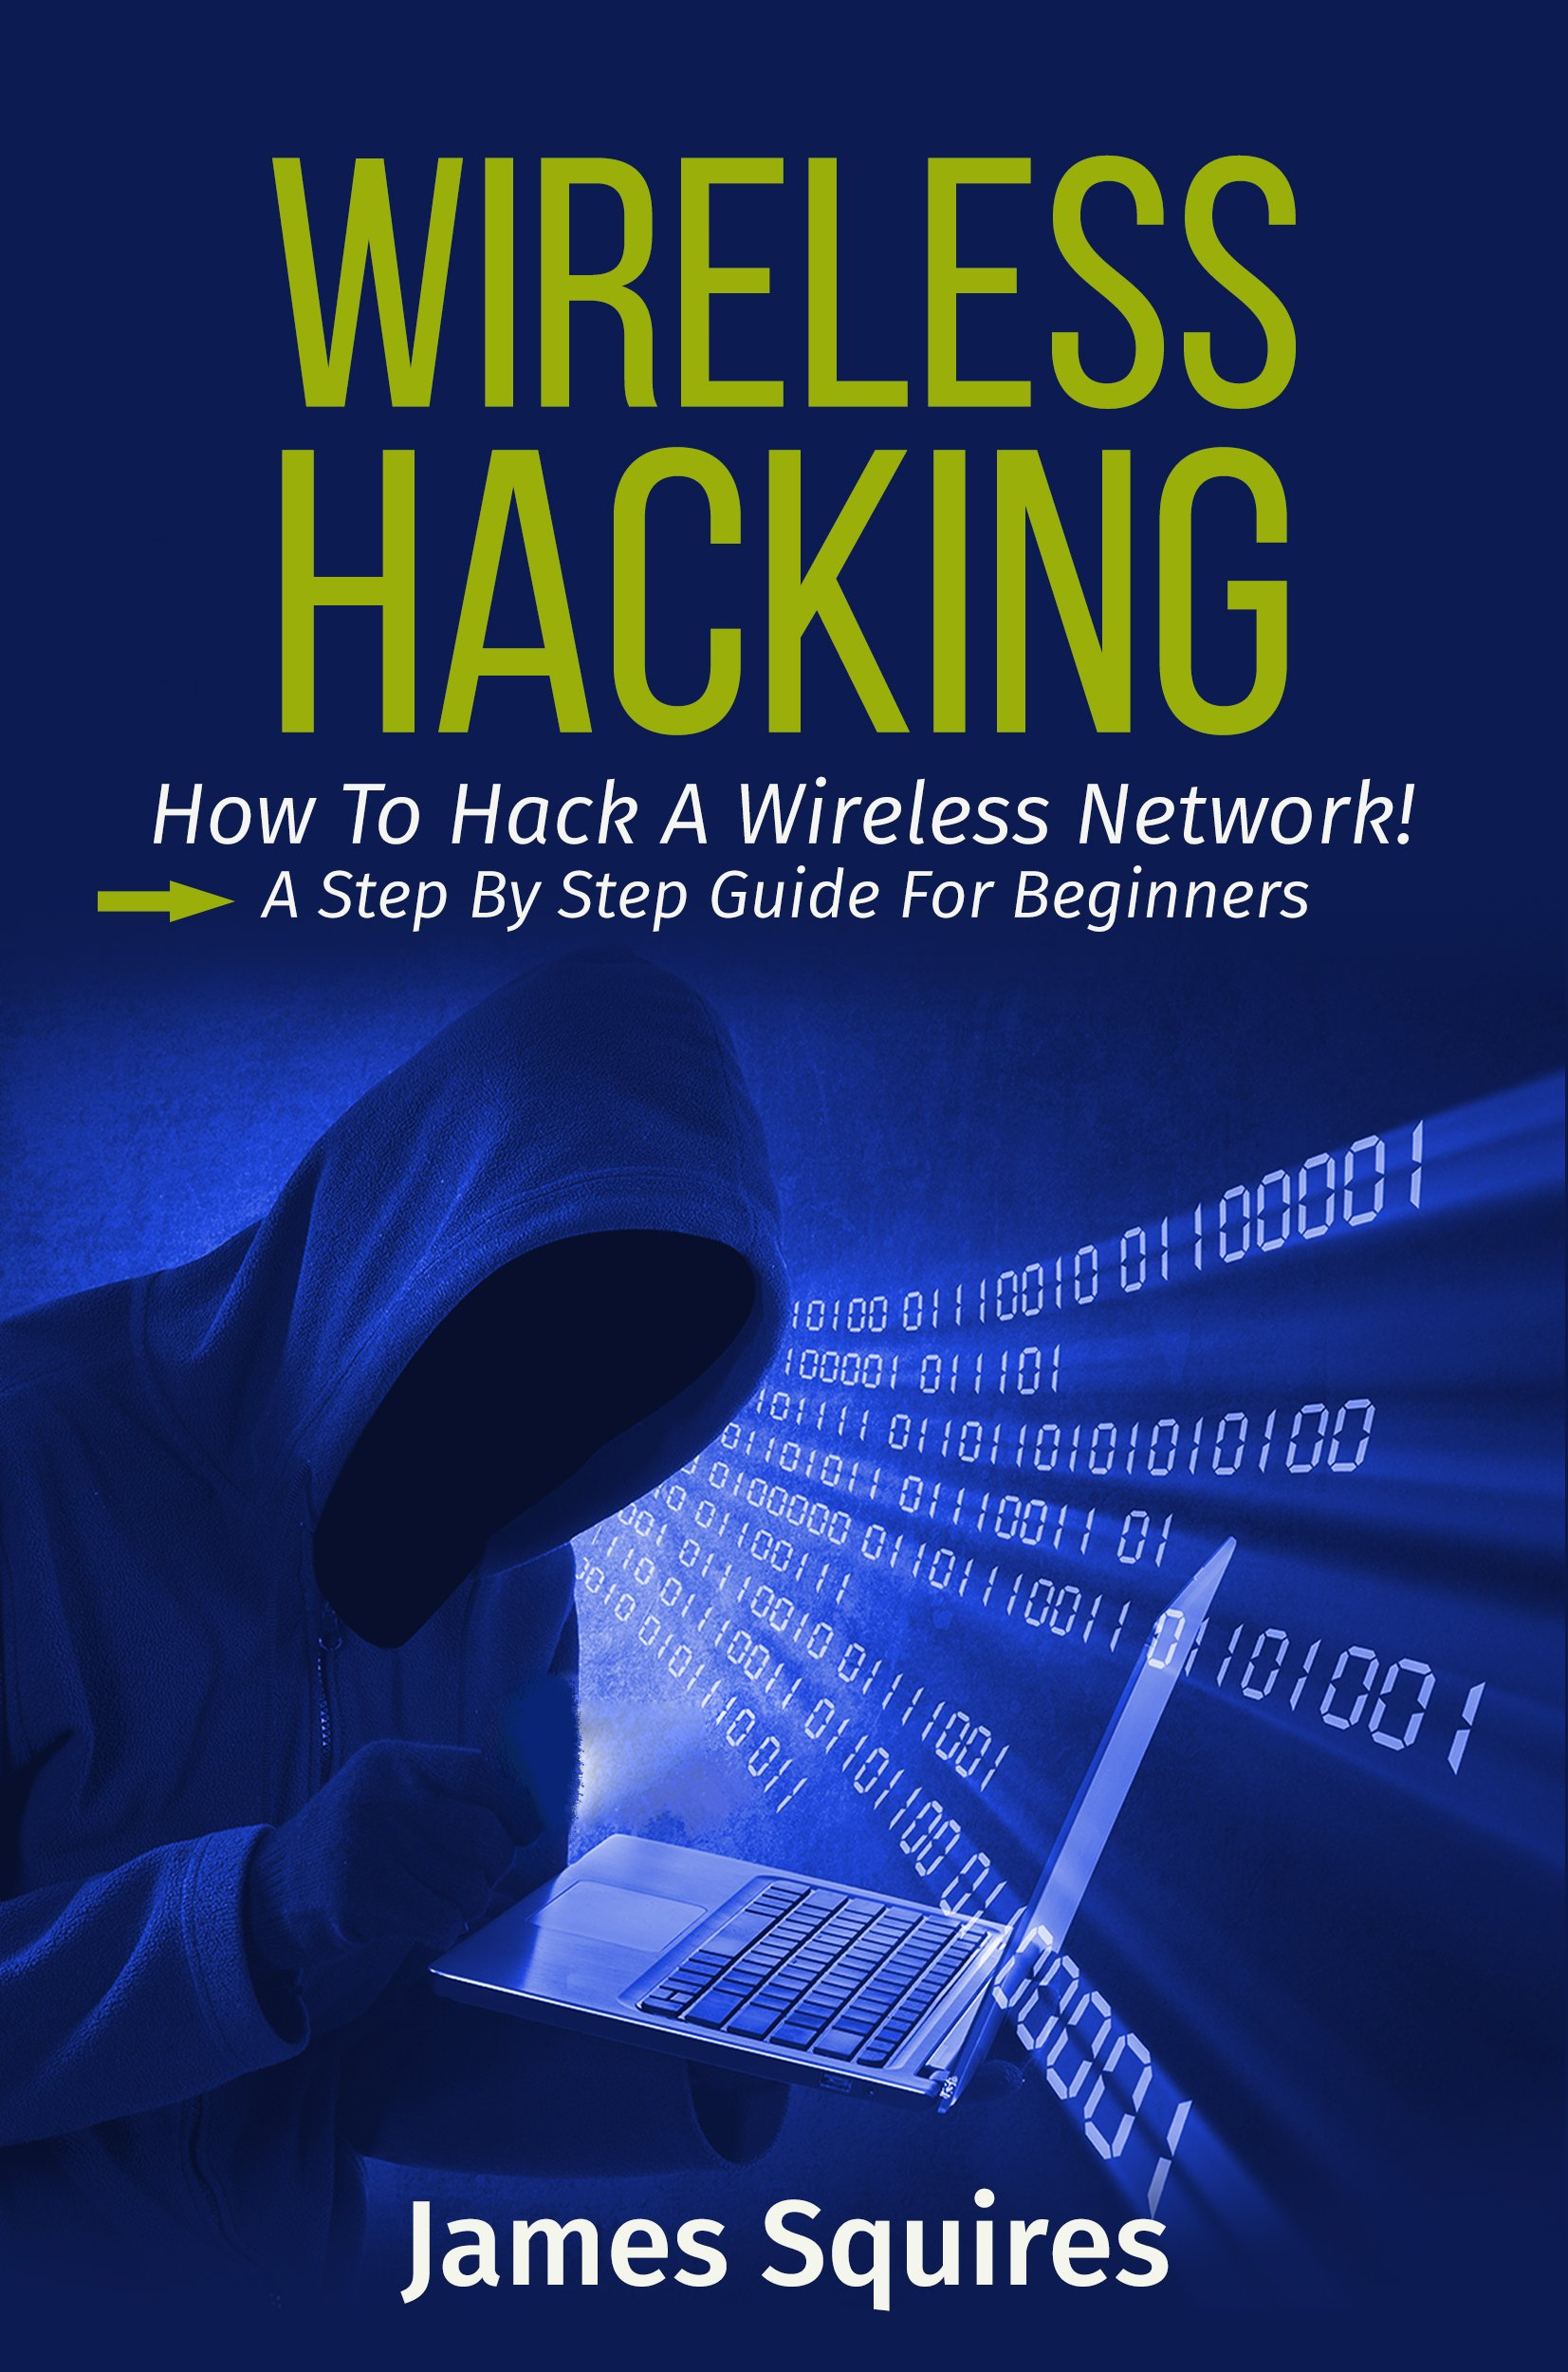 Amazon.com: Hacking: Wireless Hacking, How to Hack Wireless Networks, A  Step-by-Step Guide for Beginners (How to Hack, Wireless Hacking,  Penetration Testing ...